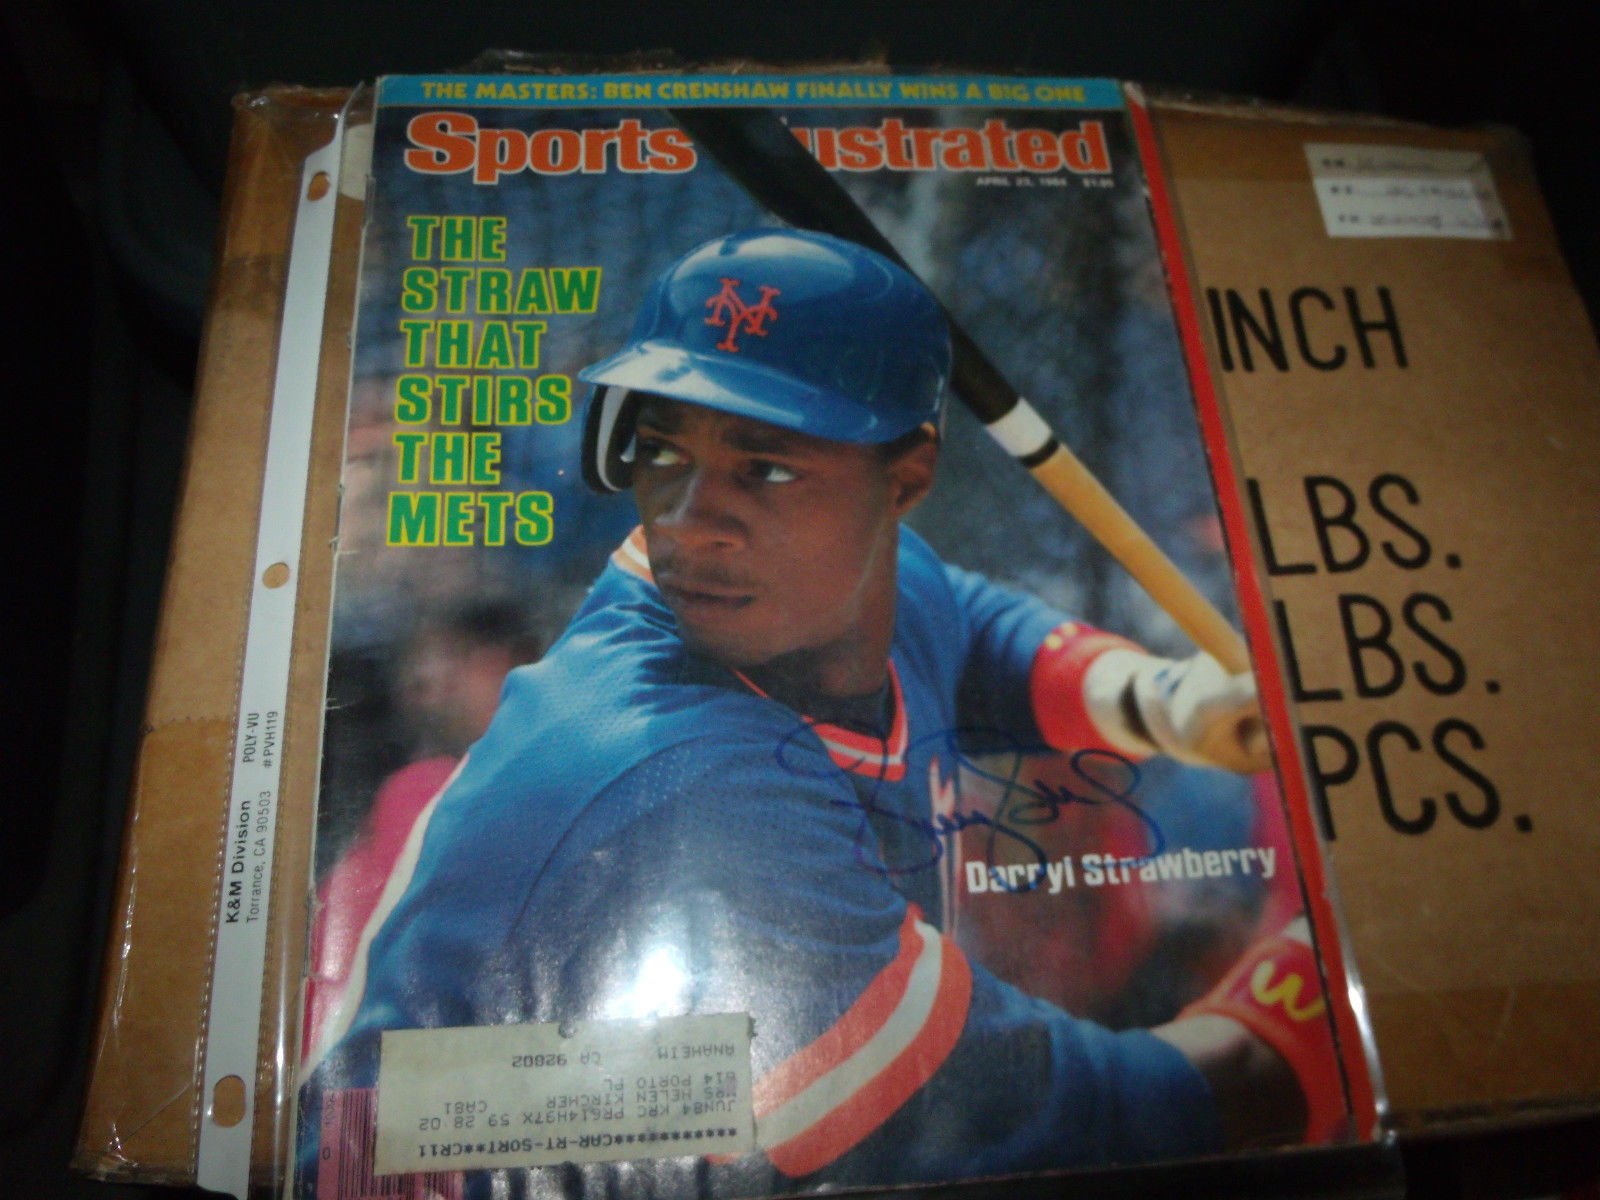 DARRYL STRAWBERRY HAND SIGNED 1984 SPORTS ILLUSTRATED METS BASEBALL